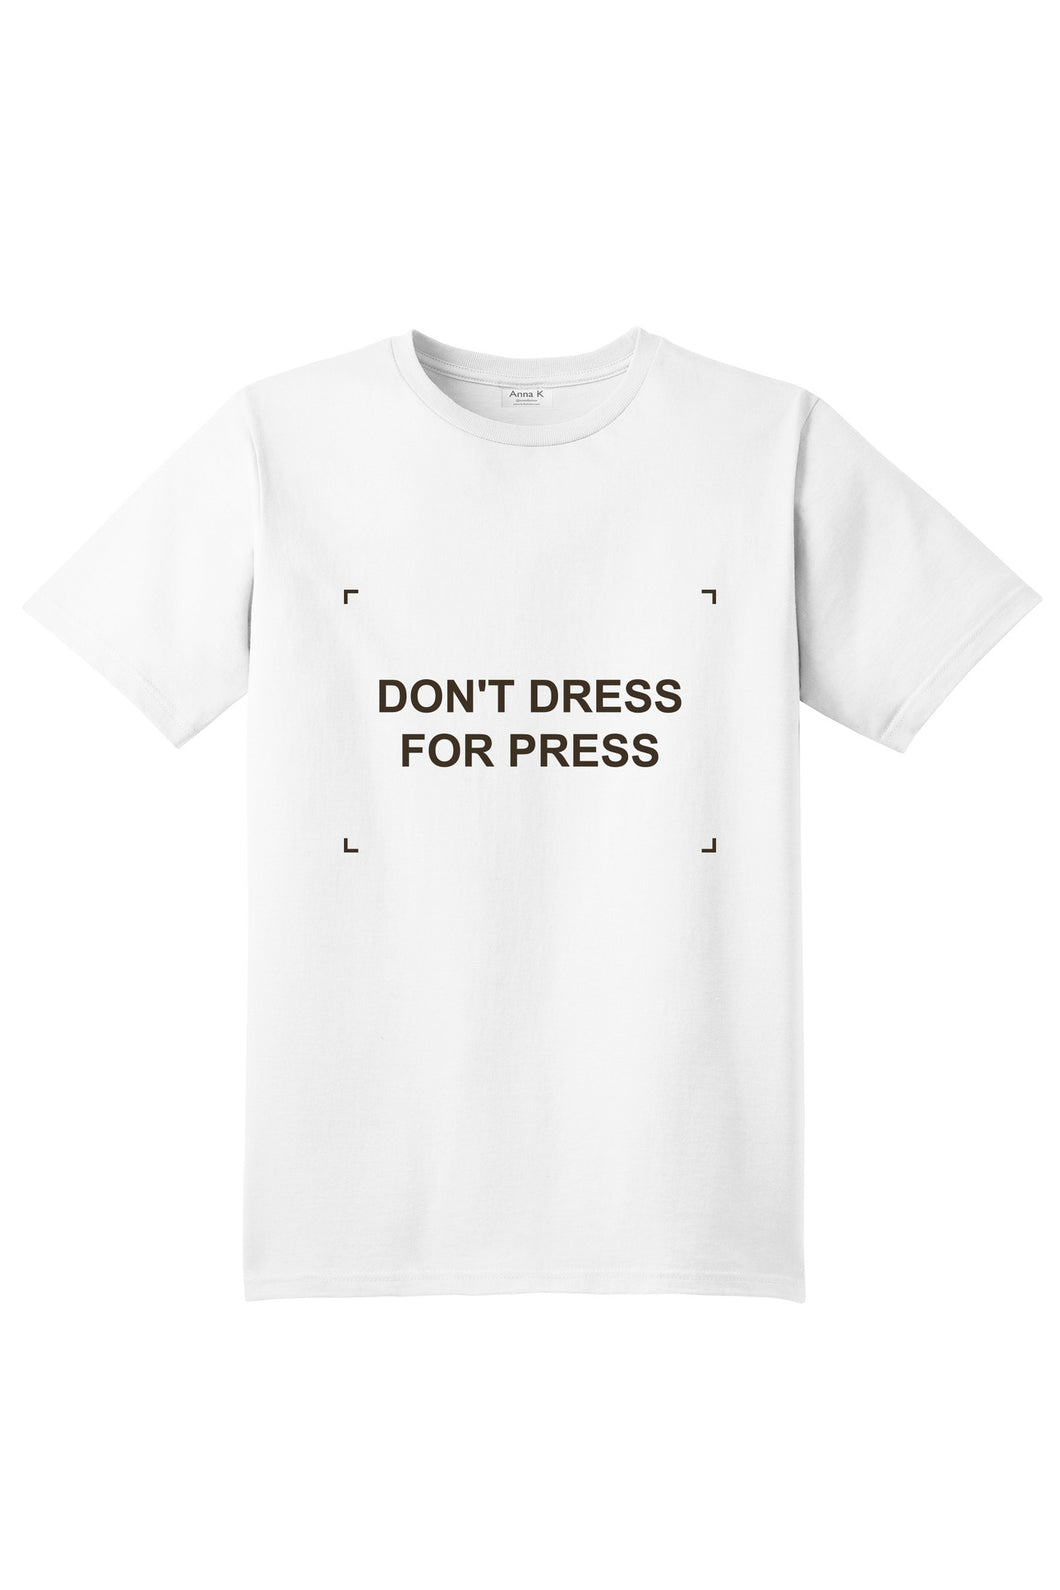 Don't dress for press - Anna K